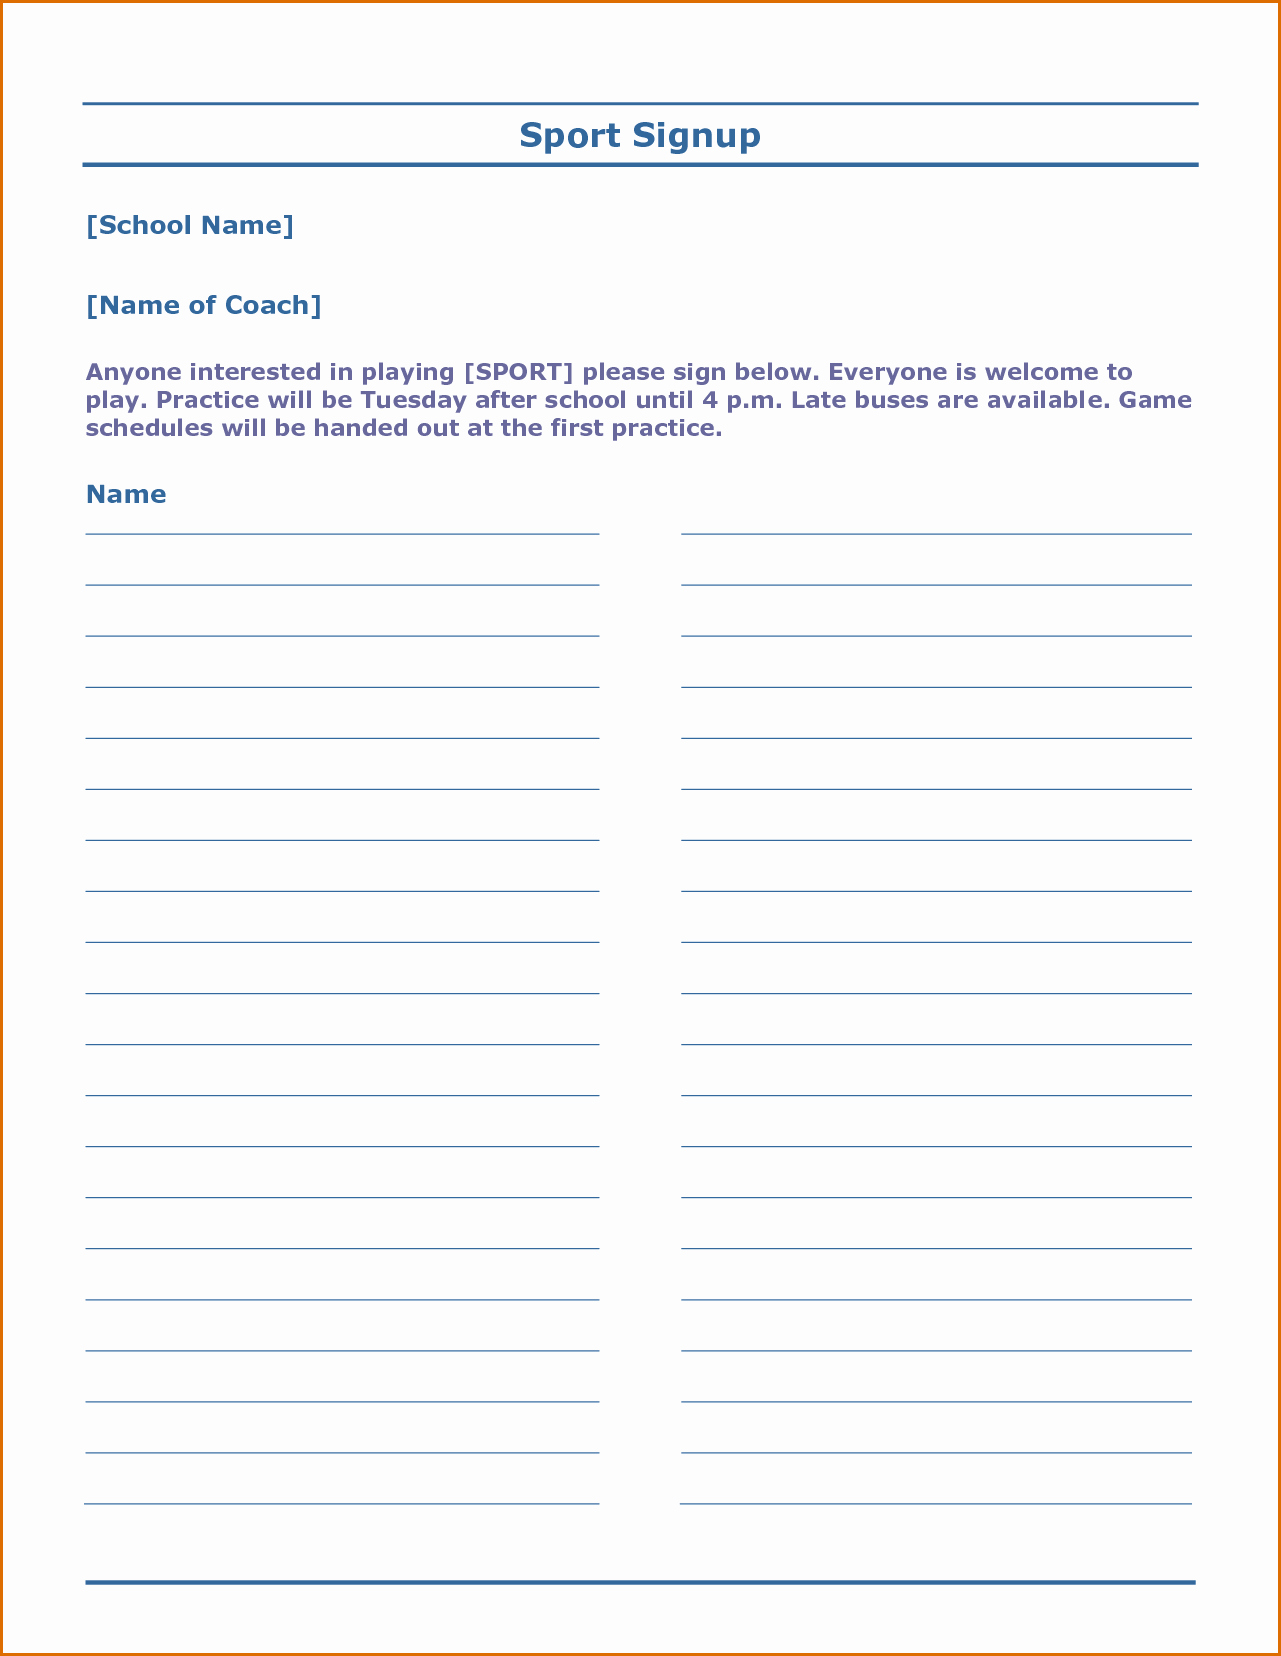 Sign Up form Template Word Unique 7 Sign Up Sheet Template Word